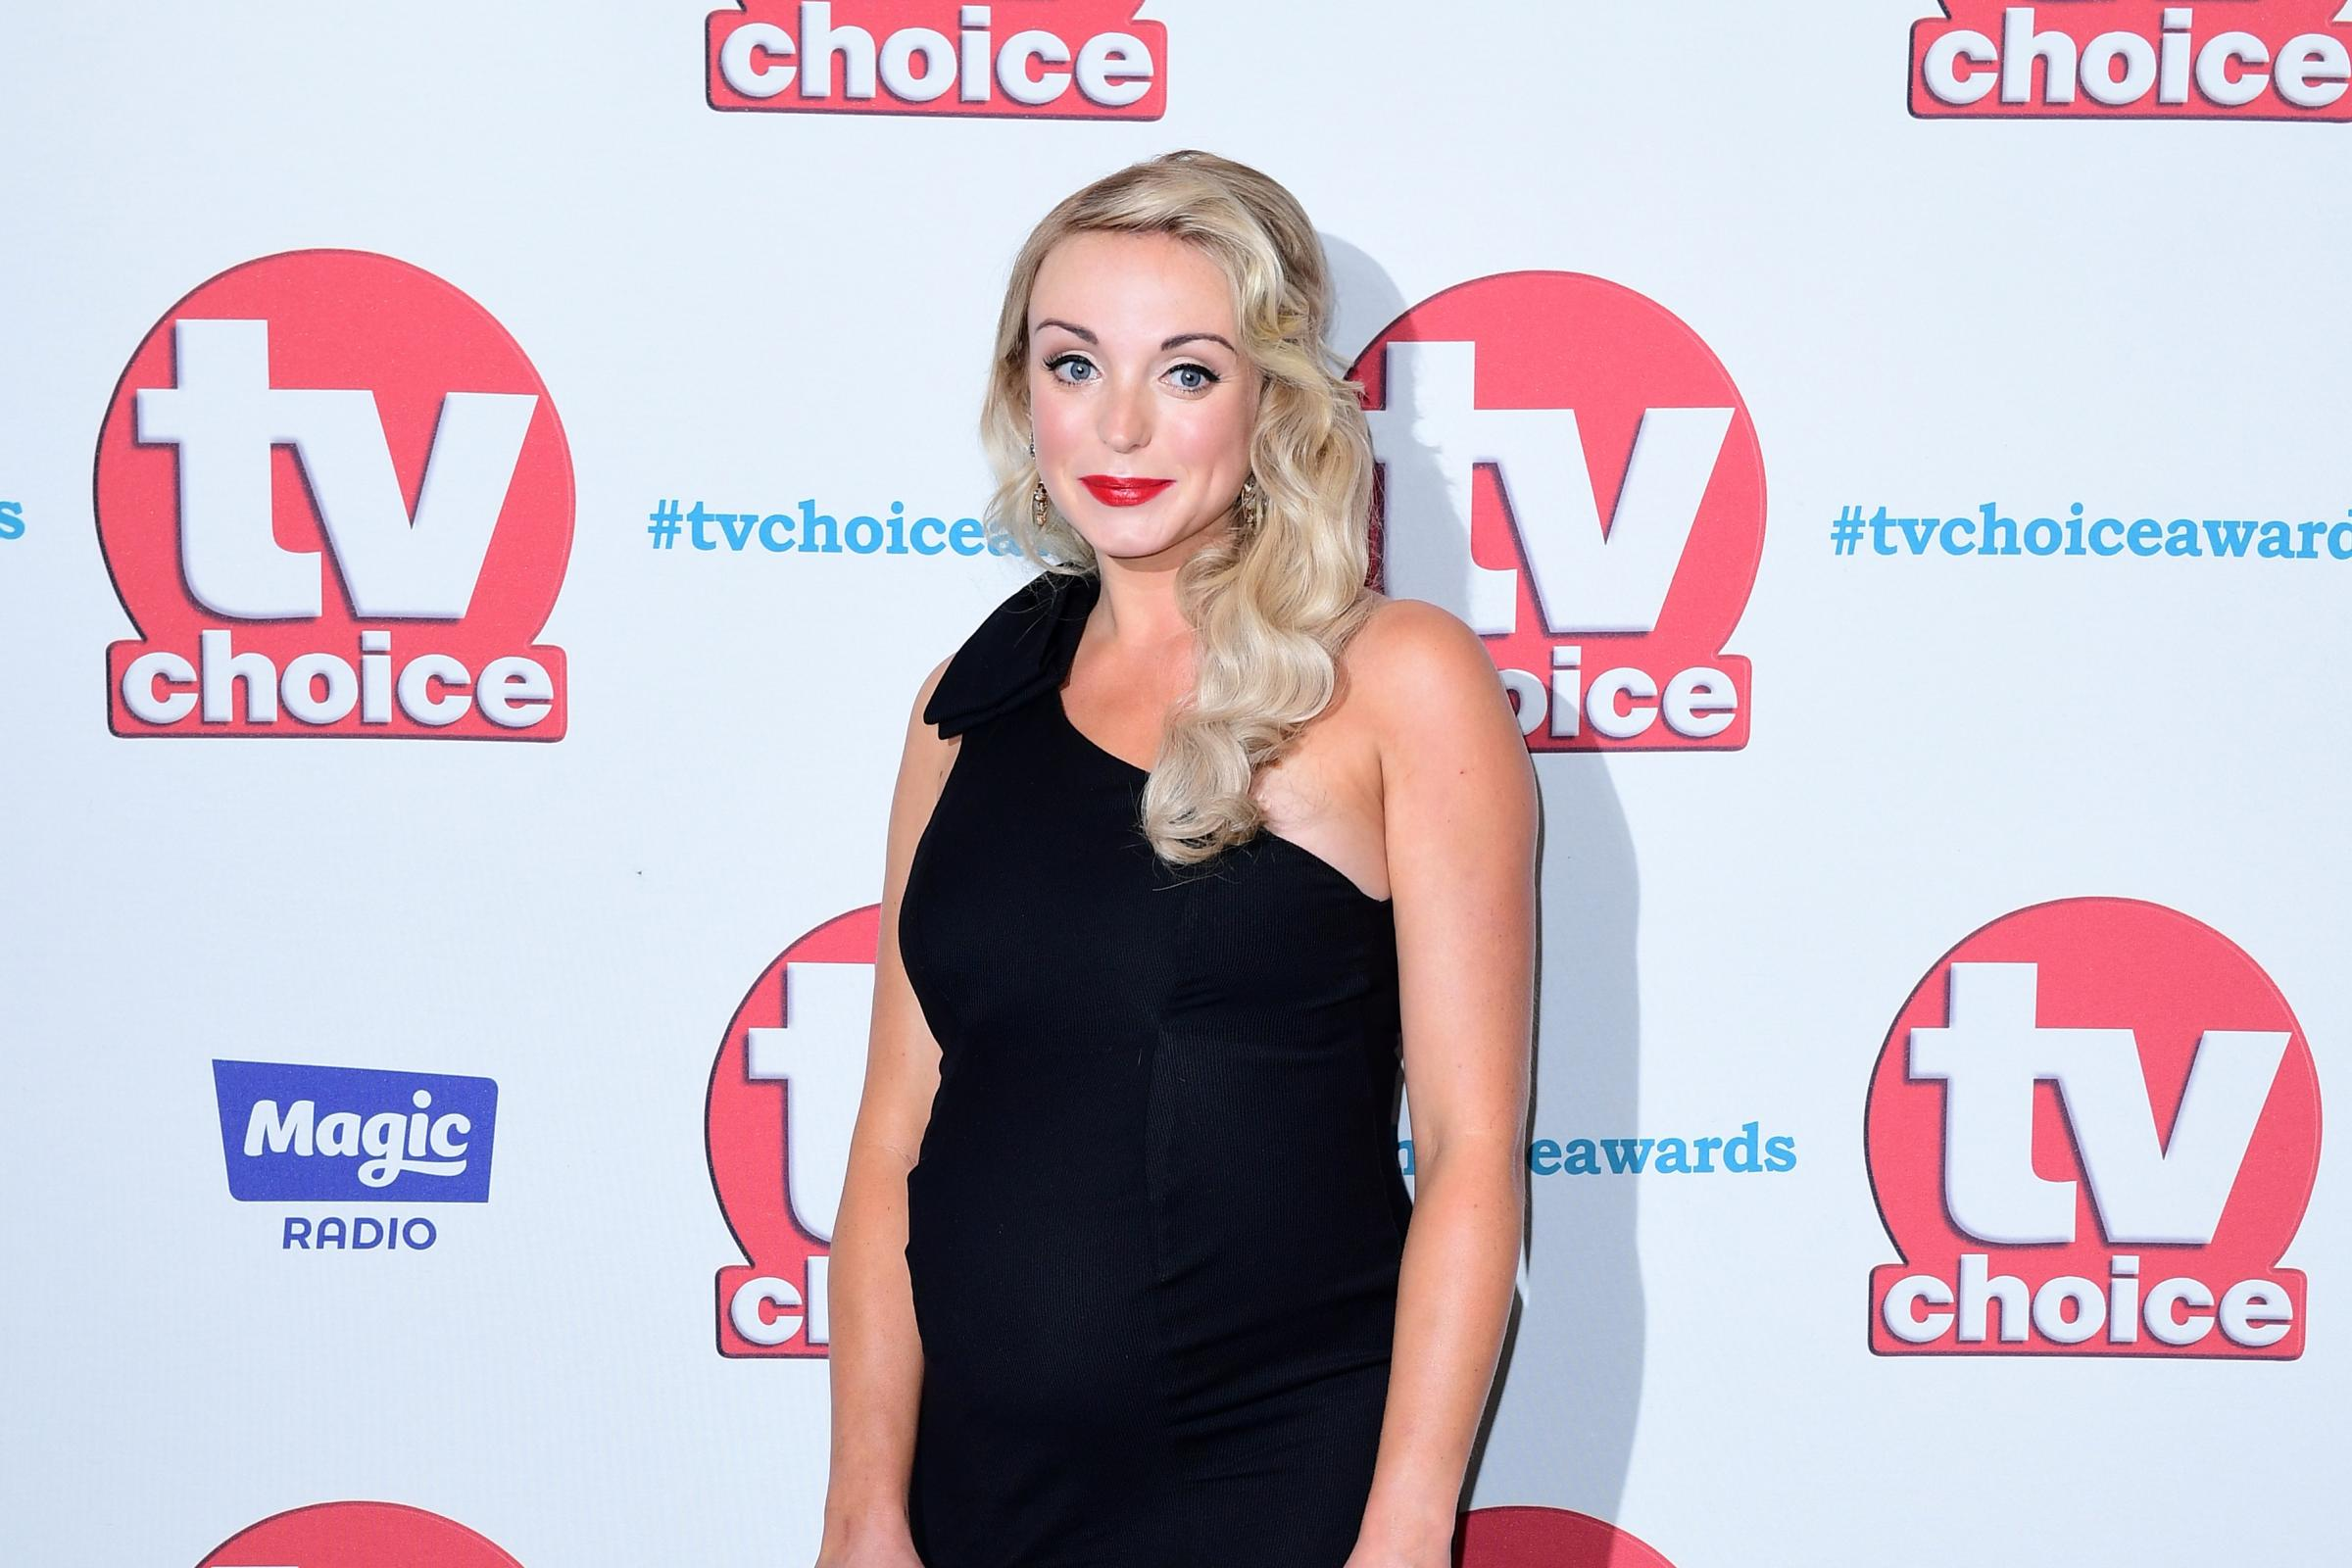 Helen George fires back over fat shaming comment (Ian West/PA)